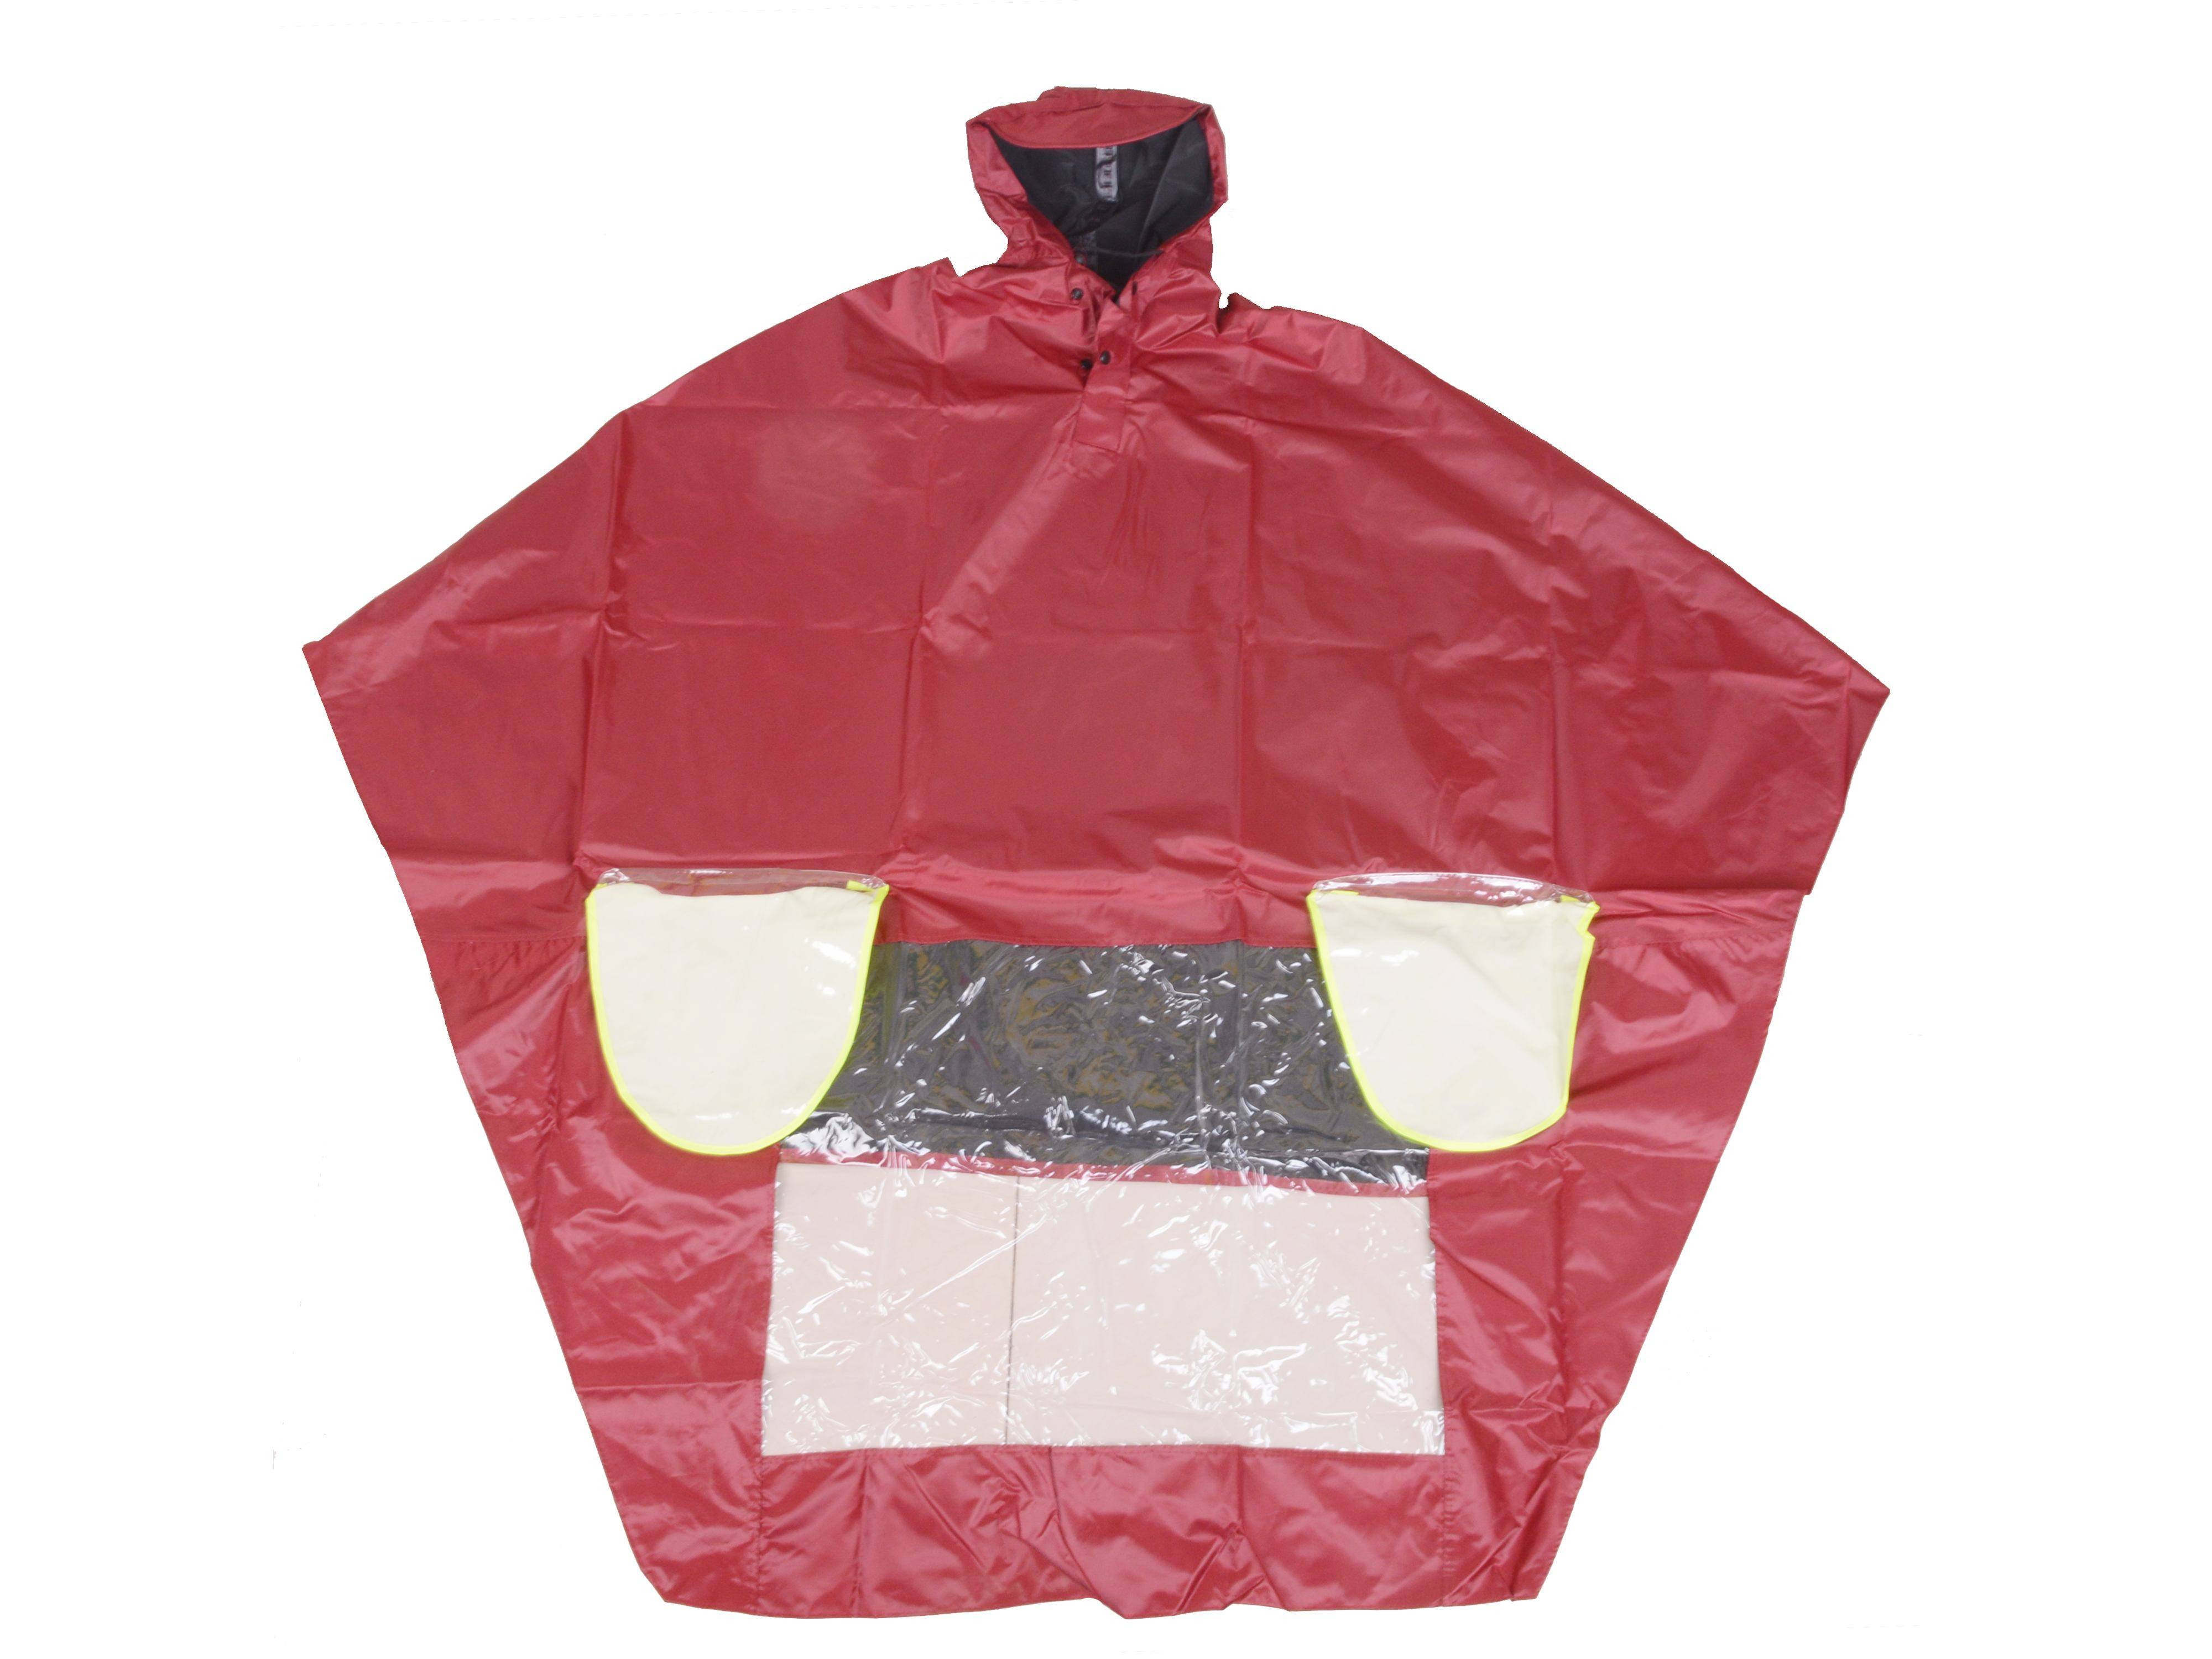 R-1020A-PL-3 RED POLYESTER MOTORCYCLE RAIN GEAR